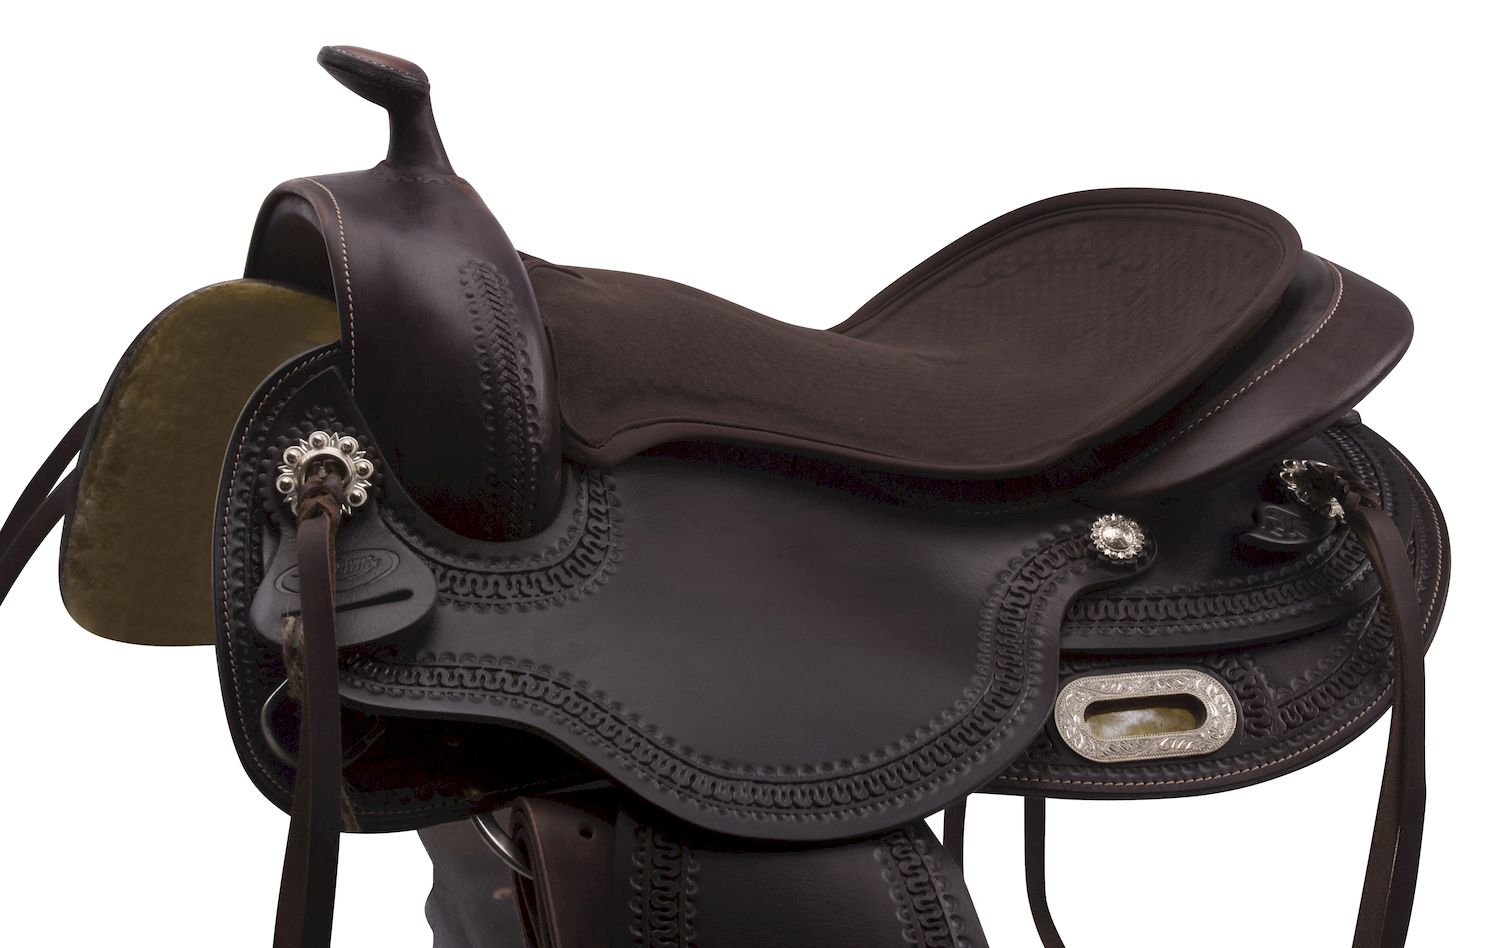 Acavallo Westernsaddle Seat Saver